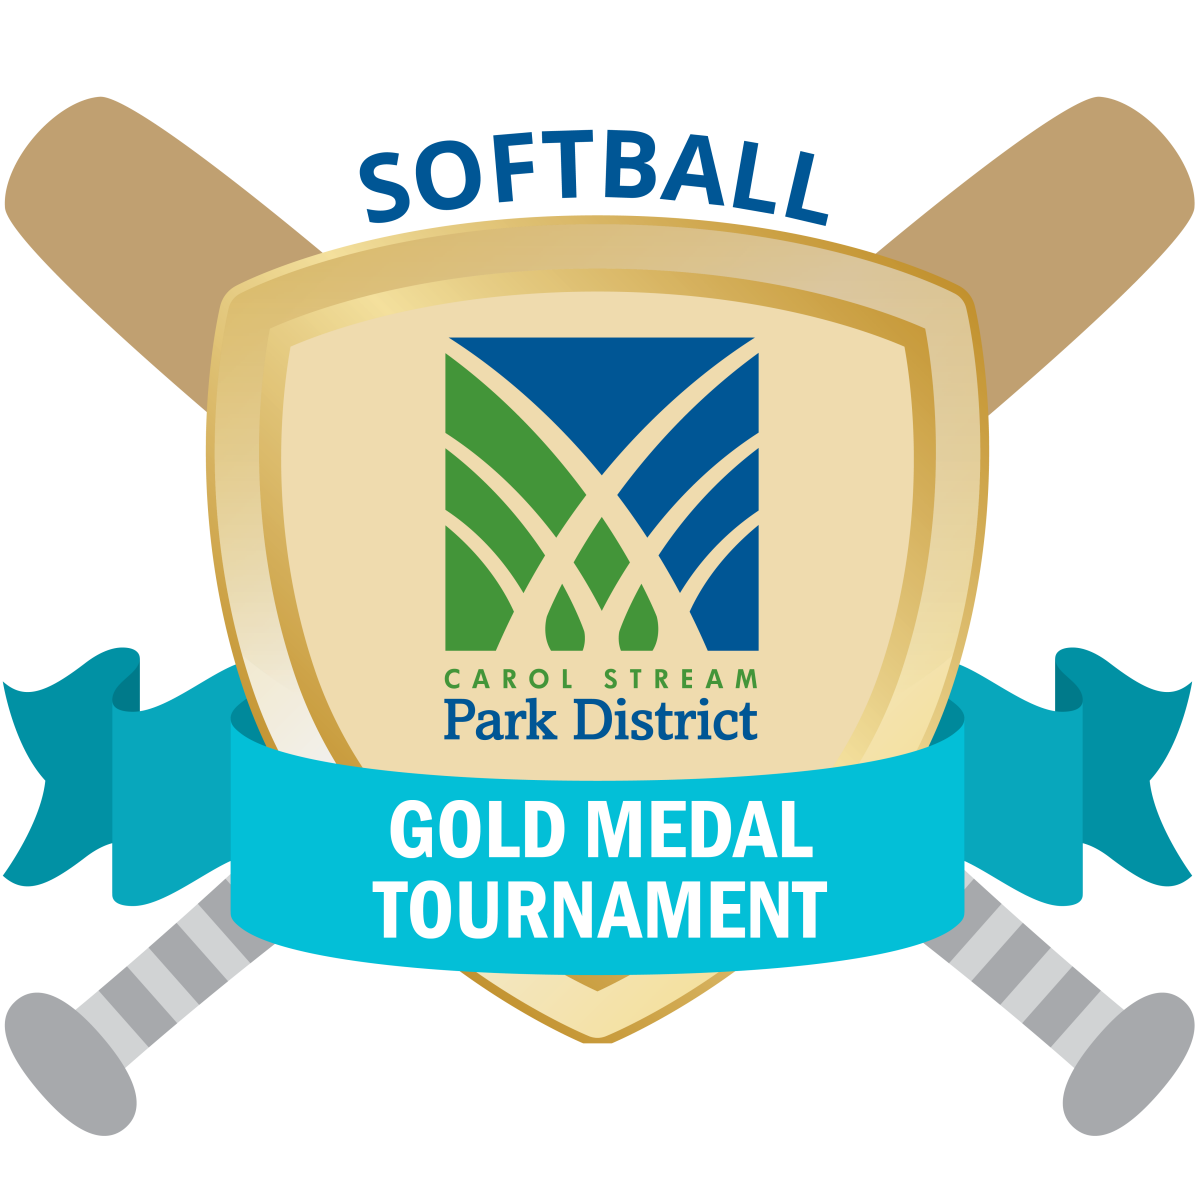 Medal clipart tournament. Youth tournaments carol stream